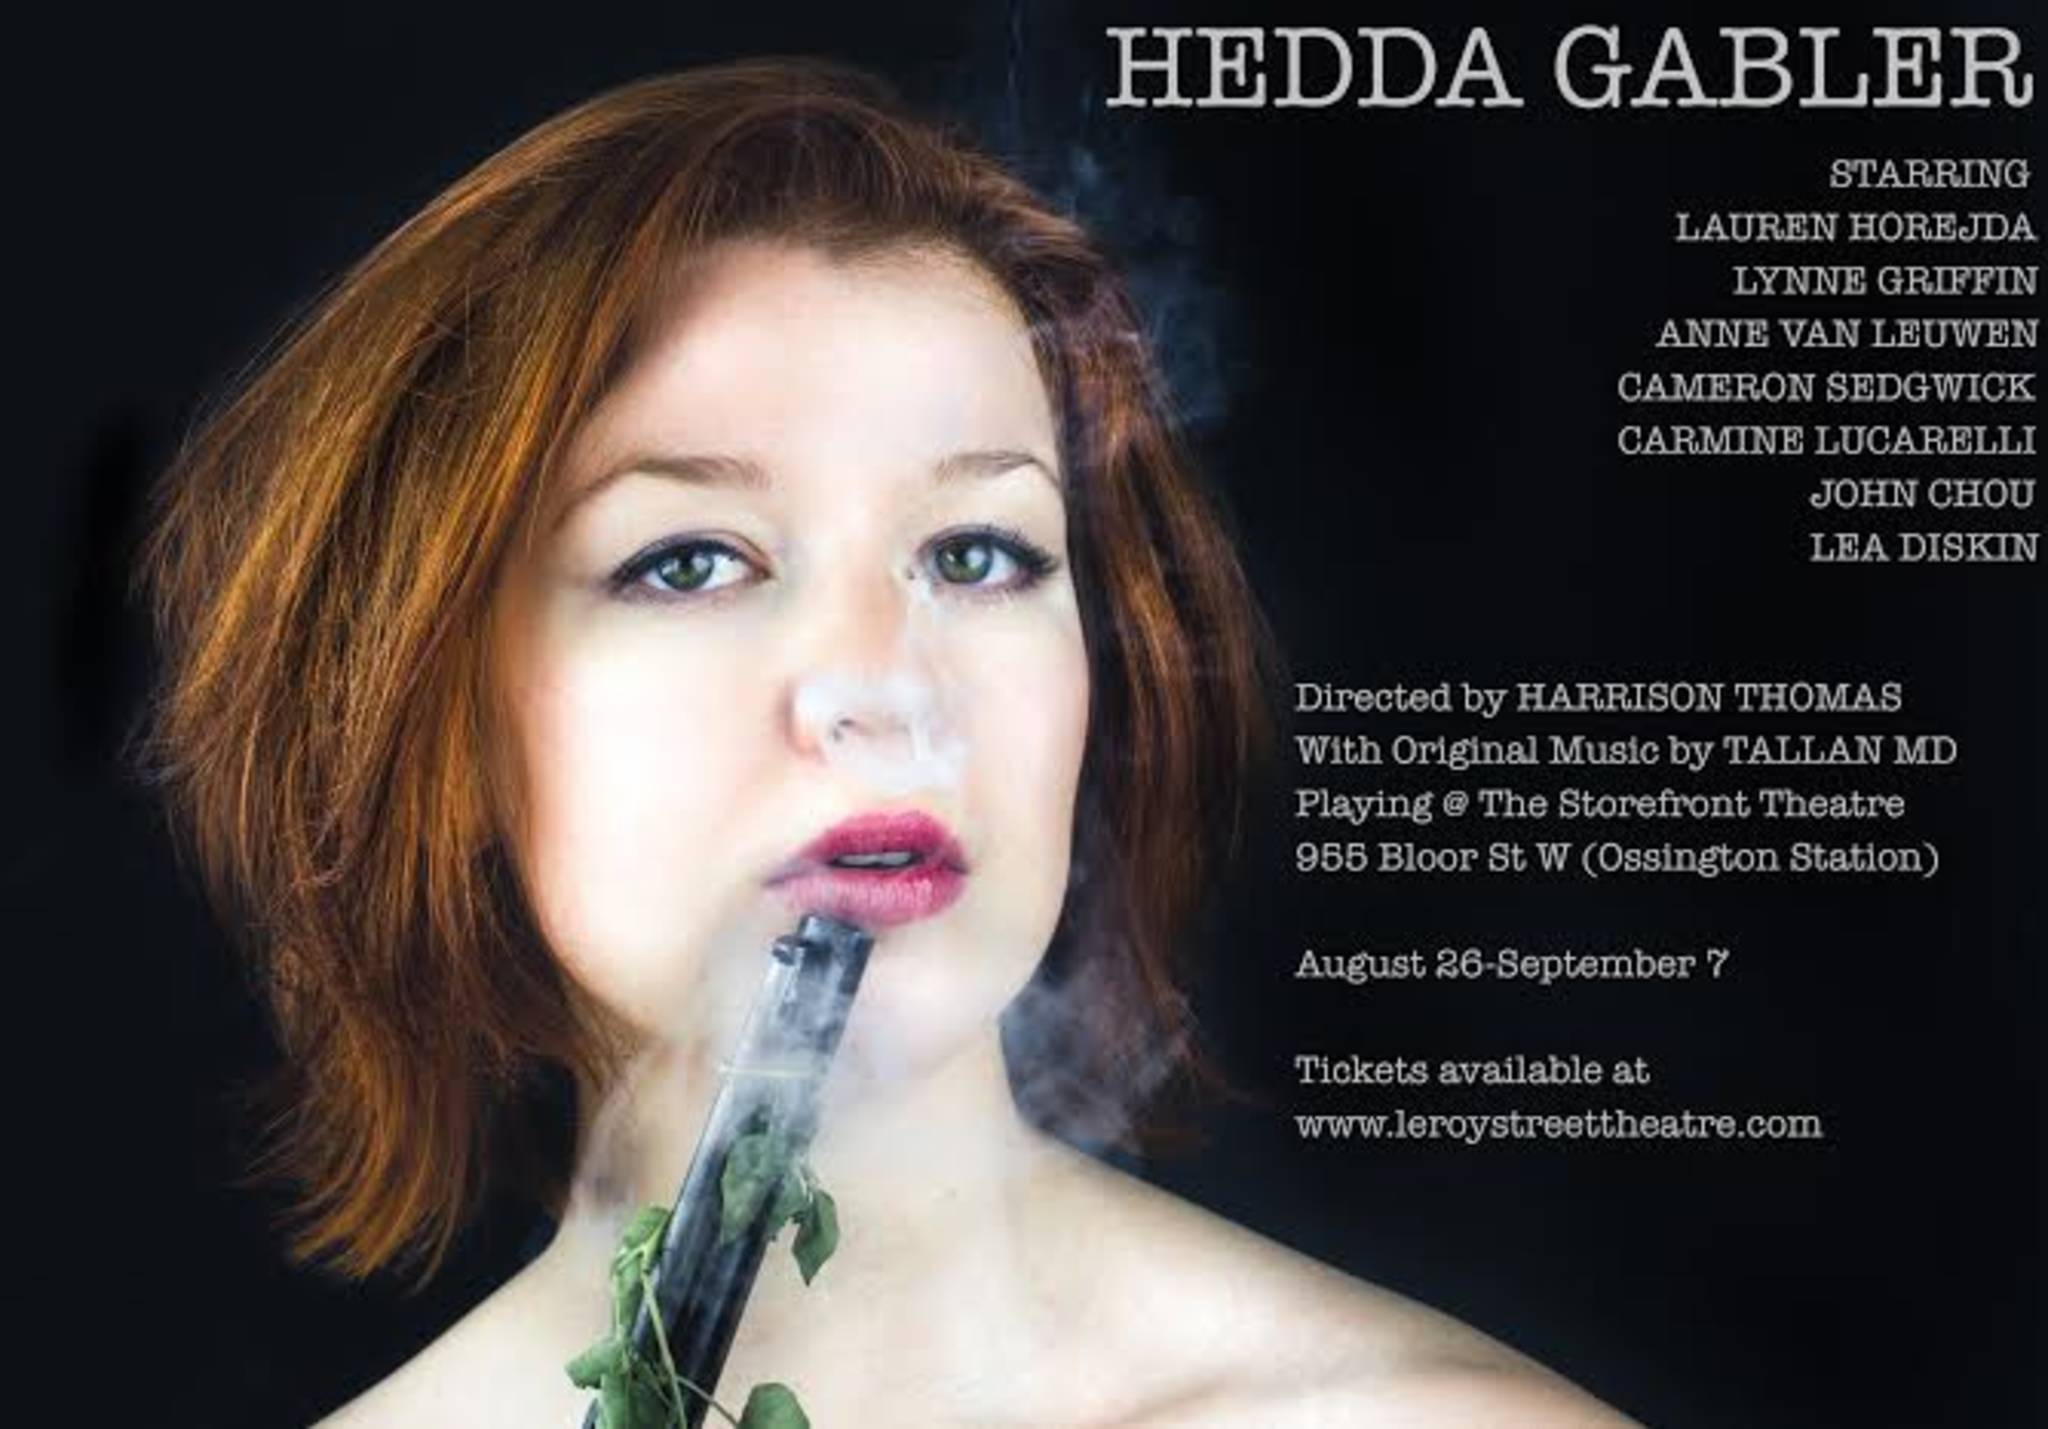 revenge in hedda gabler And the revenge is in the power of this production  the final shot delivers a coup de grace instead of a tragic climax hedda gabler.